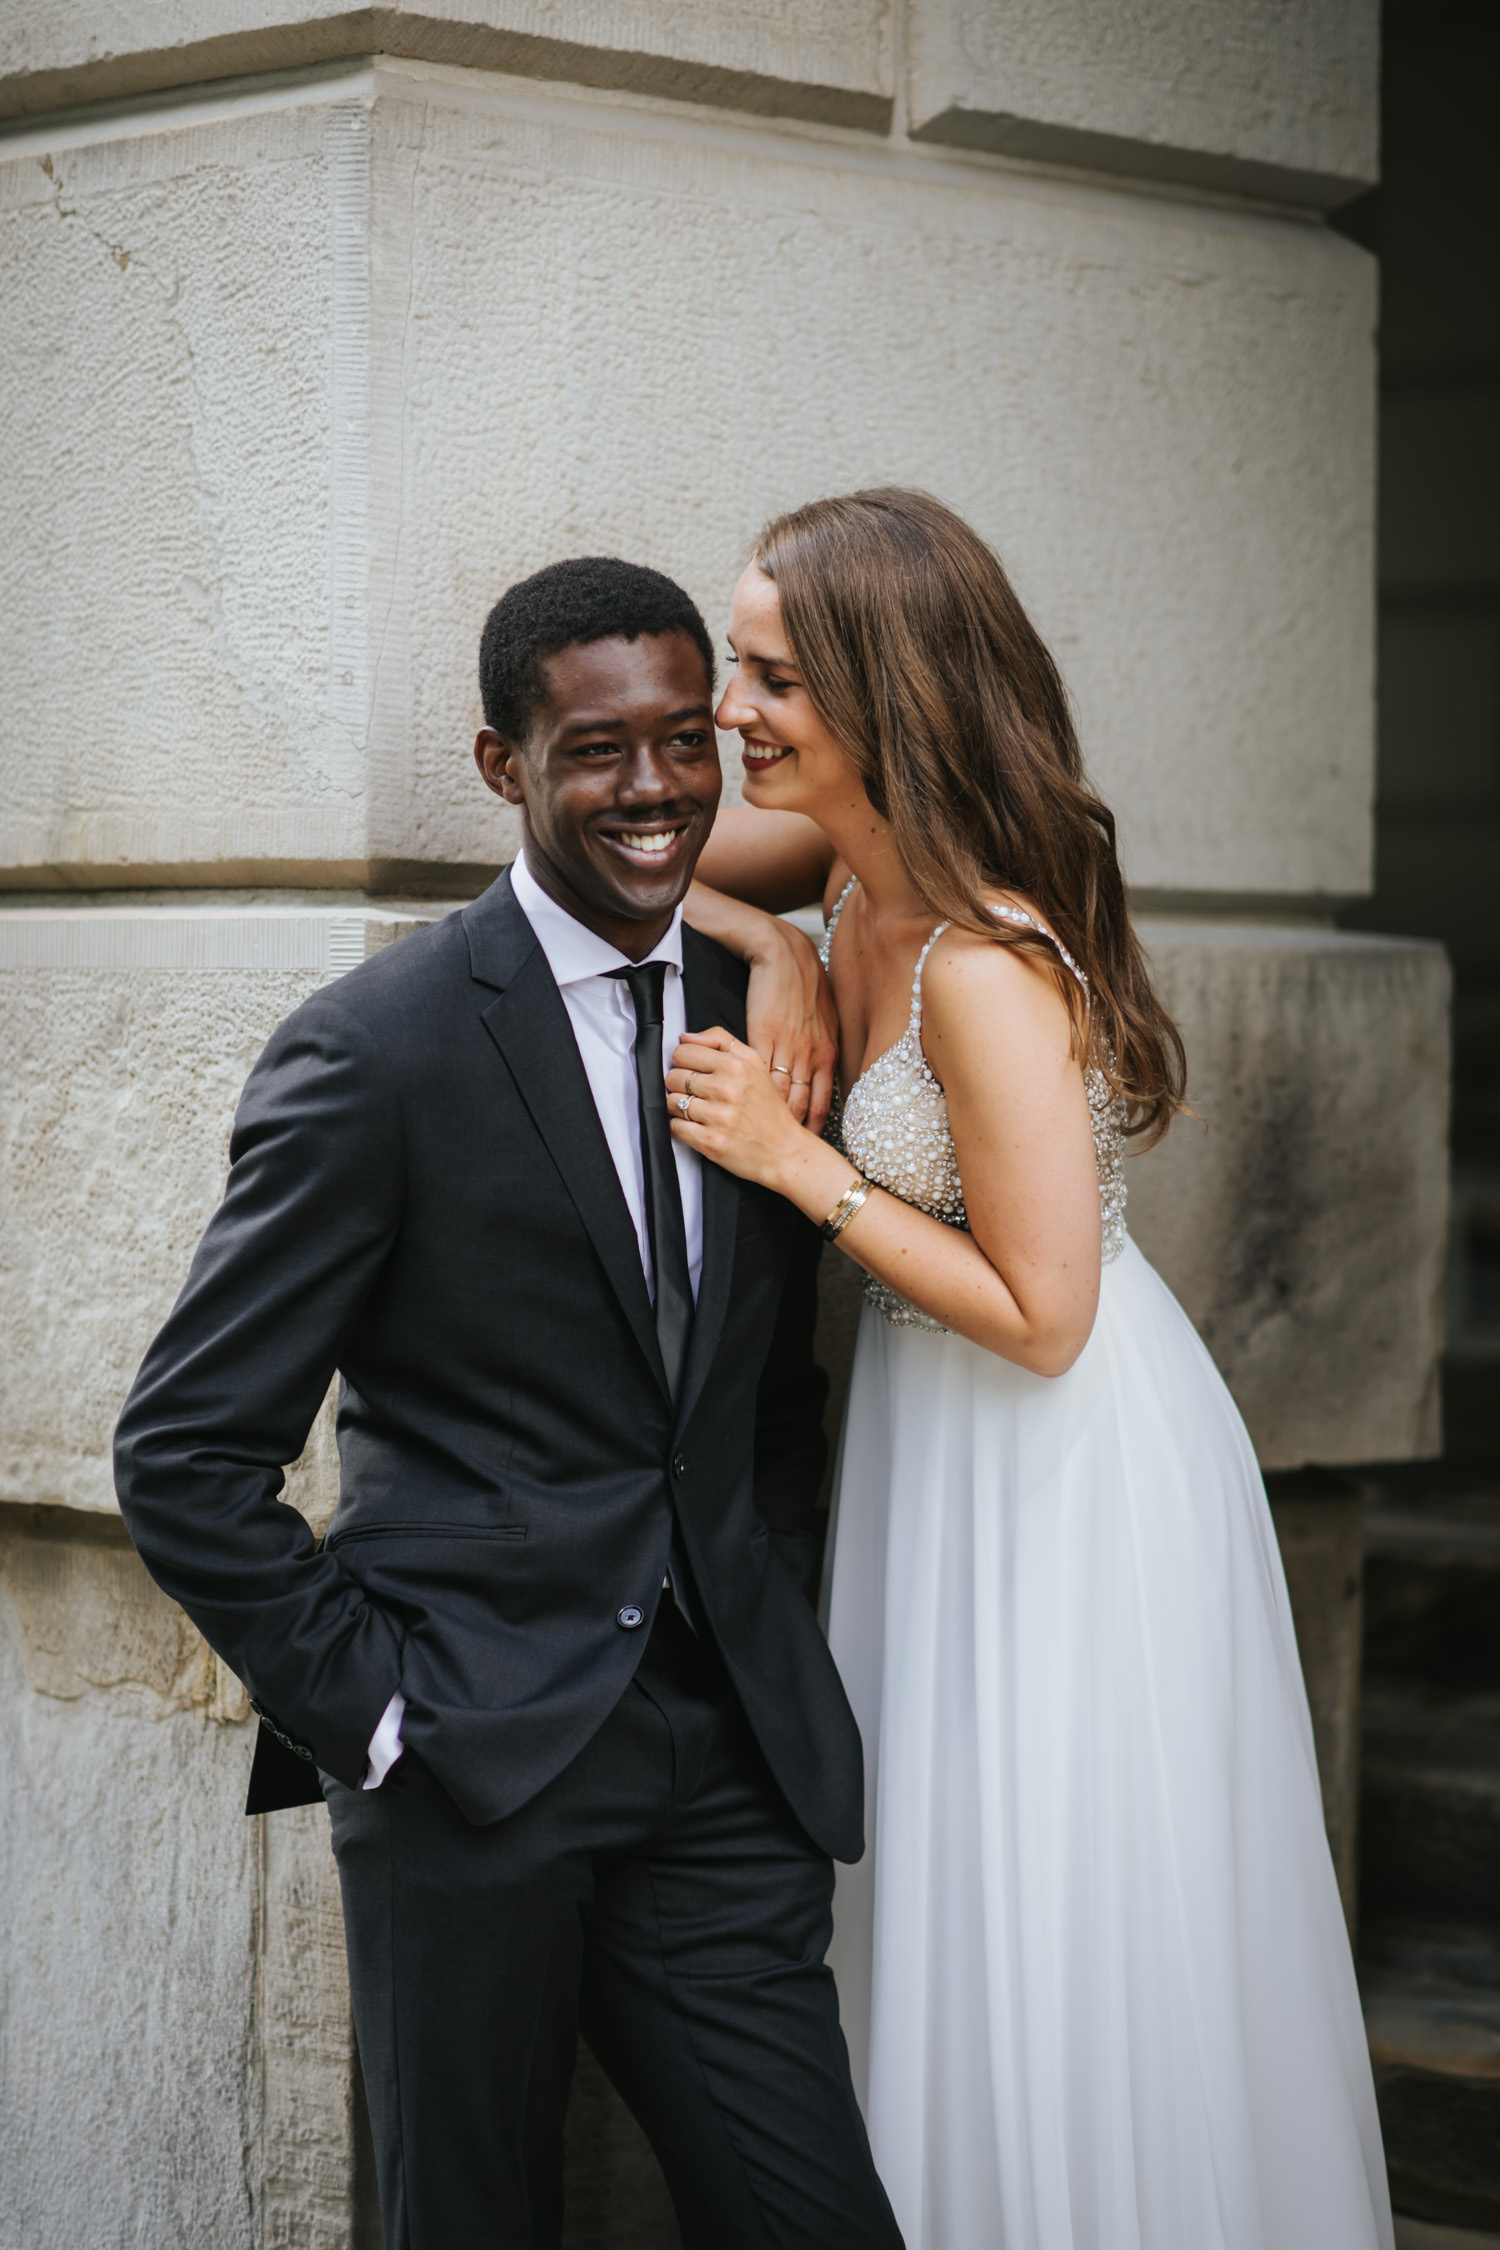 Classy editorial wedding photography happy couple at Osgoode Hall Toronto